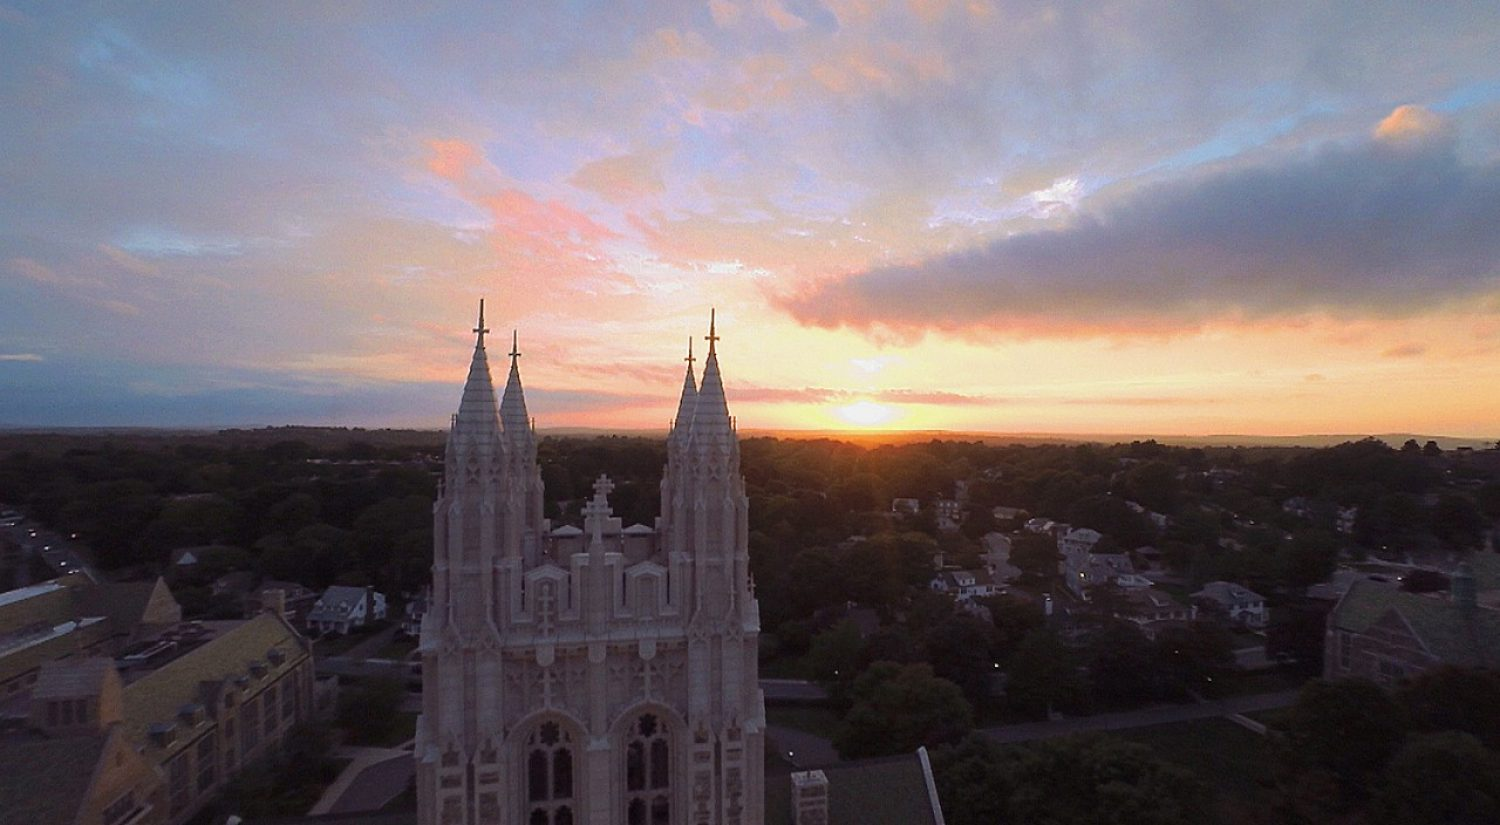 Gasson tower at sunset